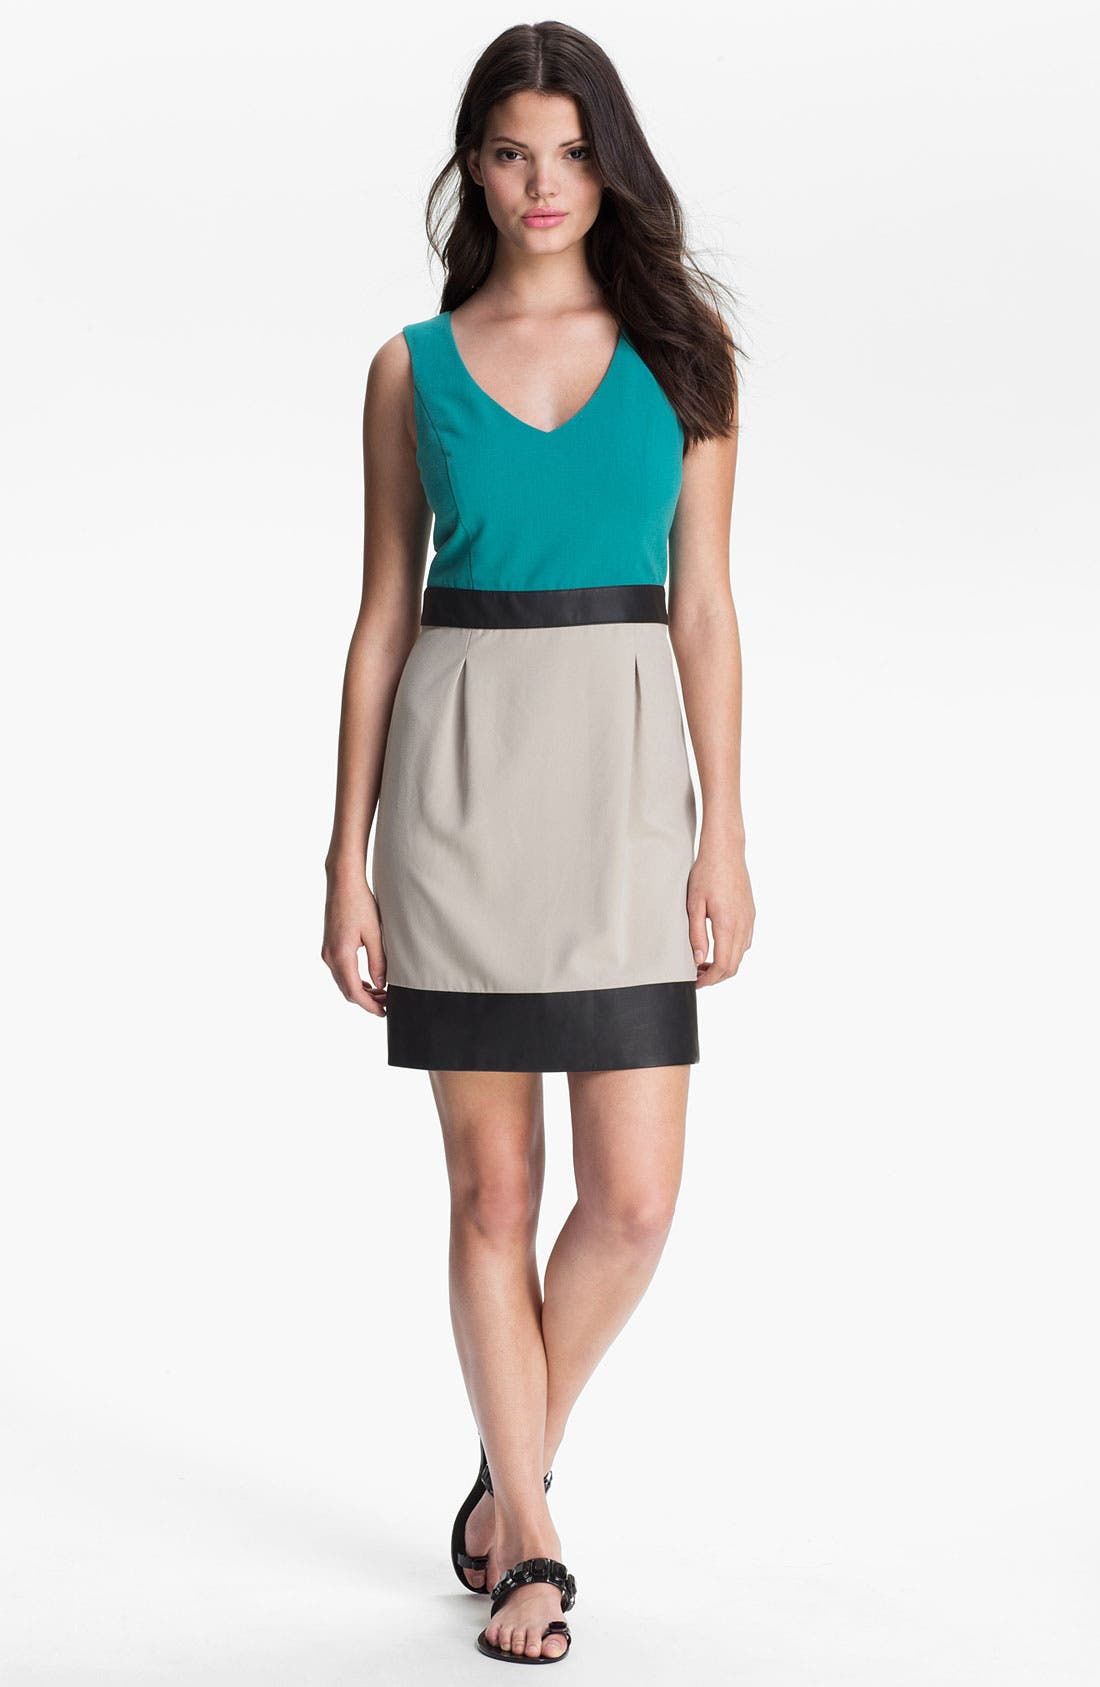 Alternate Image 1 Selected - Kensie Faux Leather Trim Colorblock Dress